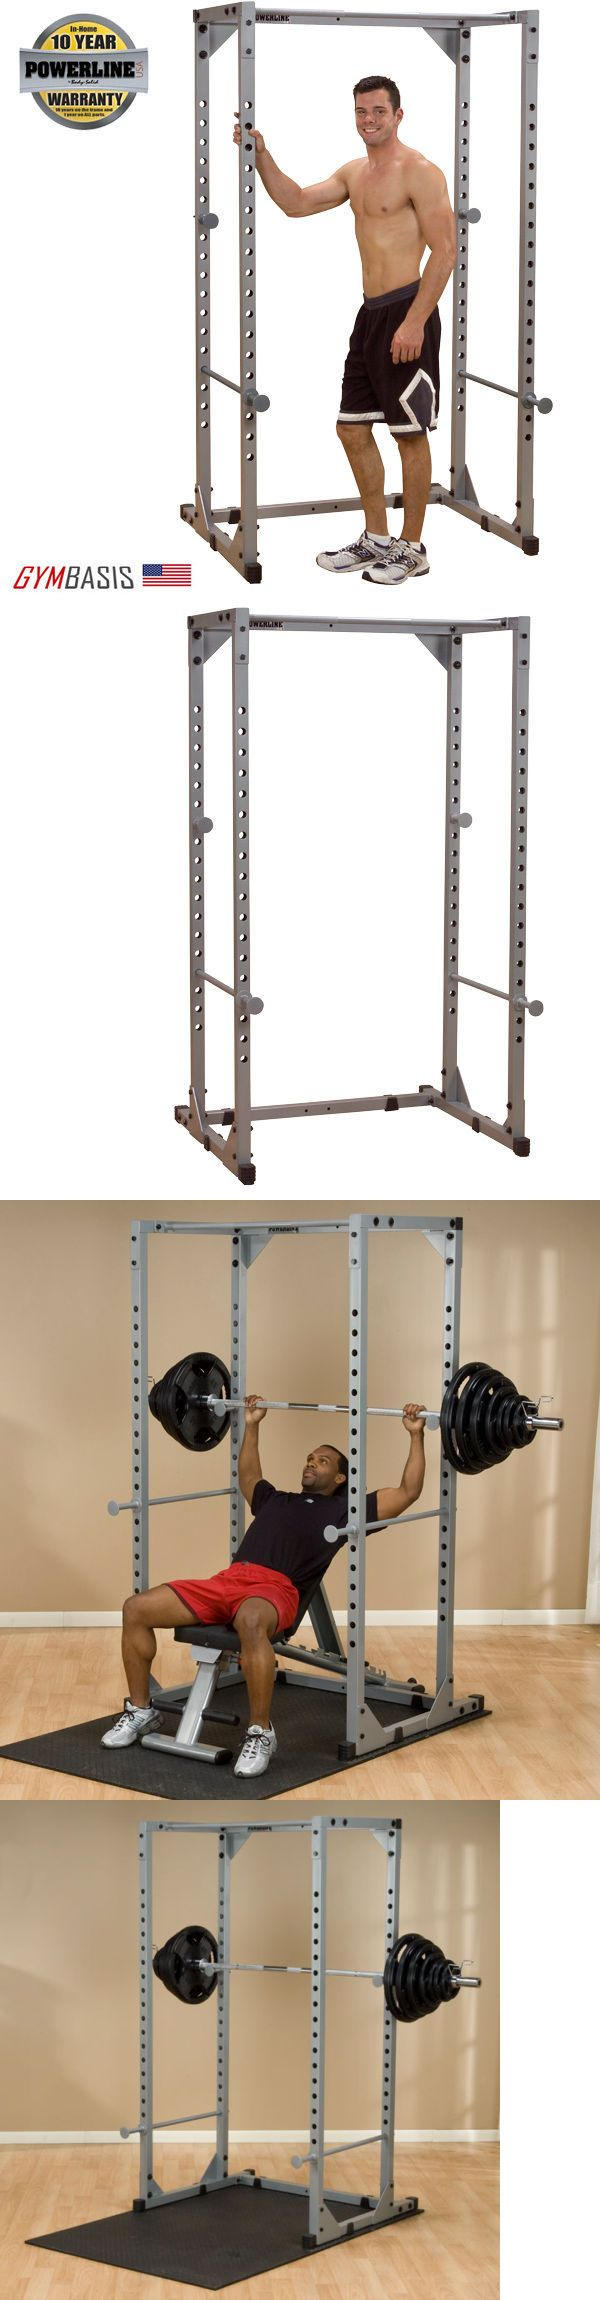 Power Racks and Smith Machines 179815: New Powerline (Feat. Body-Solid) Ppr200x Power Rack BUY IT NOW ONLY: $372.0